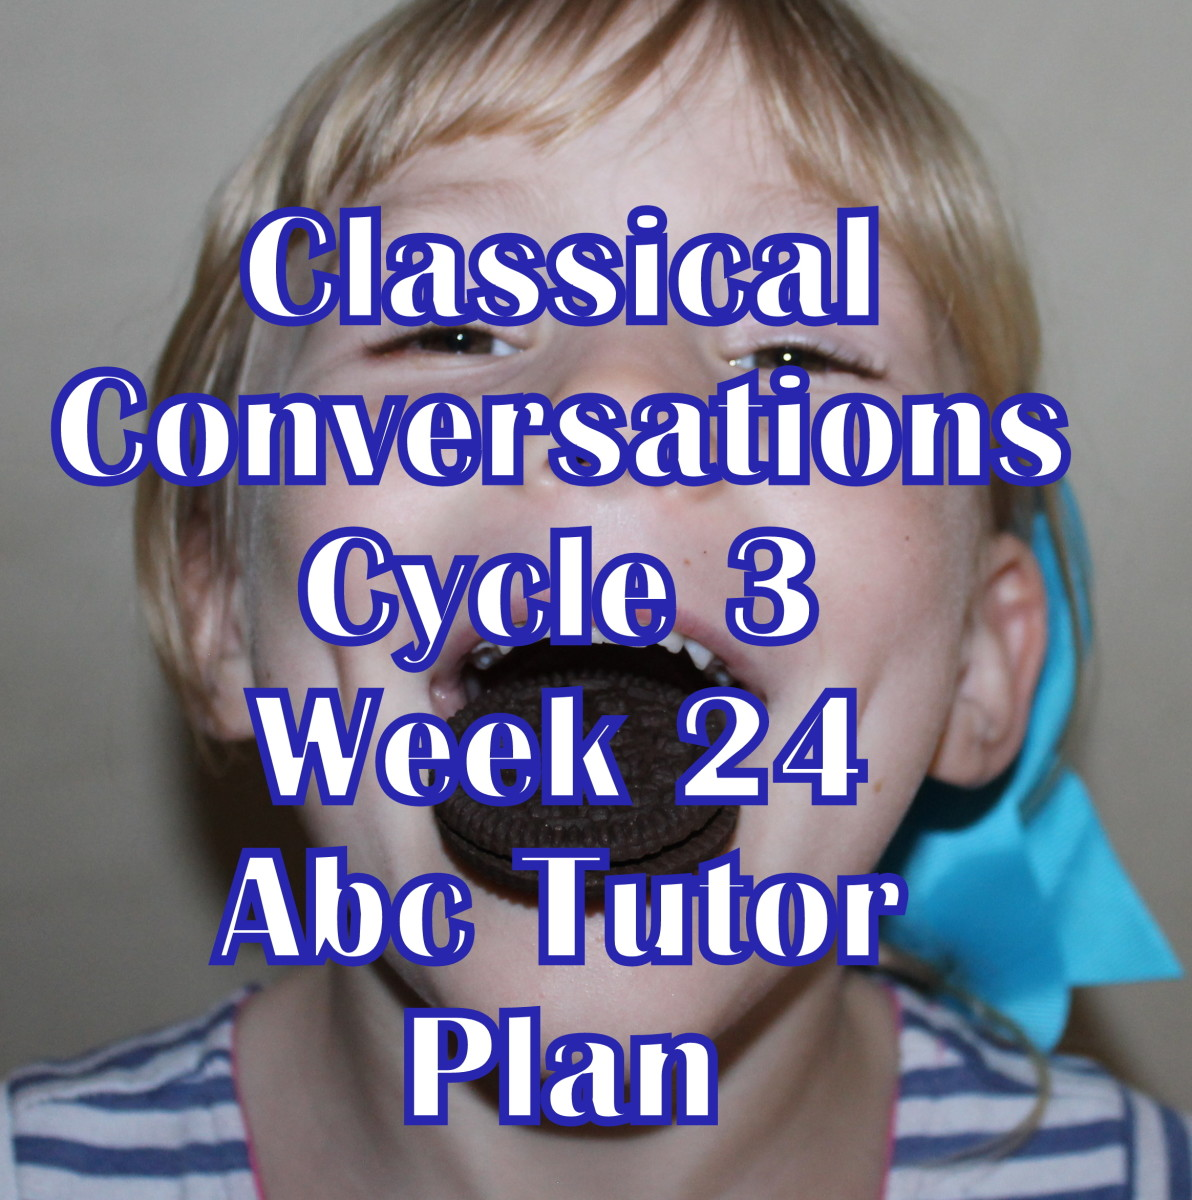 Classical Conversations CC Cycle 3 Week 24 Lesson for Abecedarians - CC C3W24